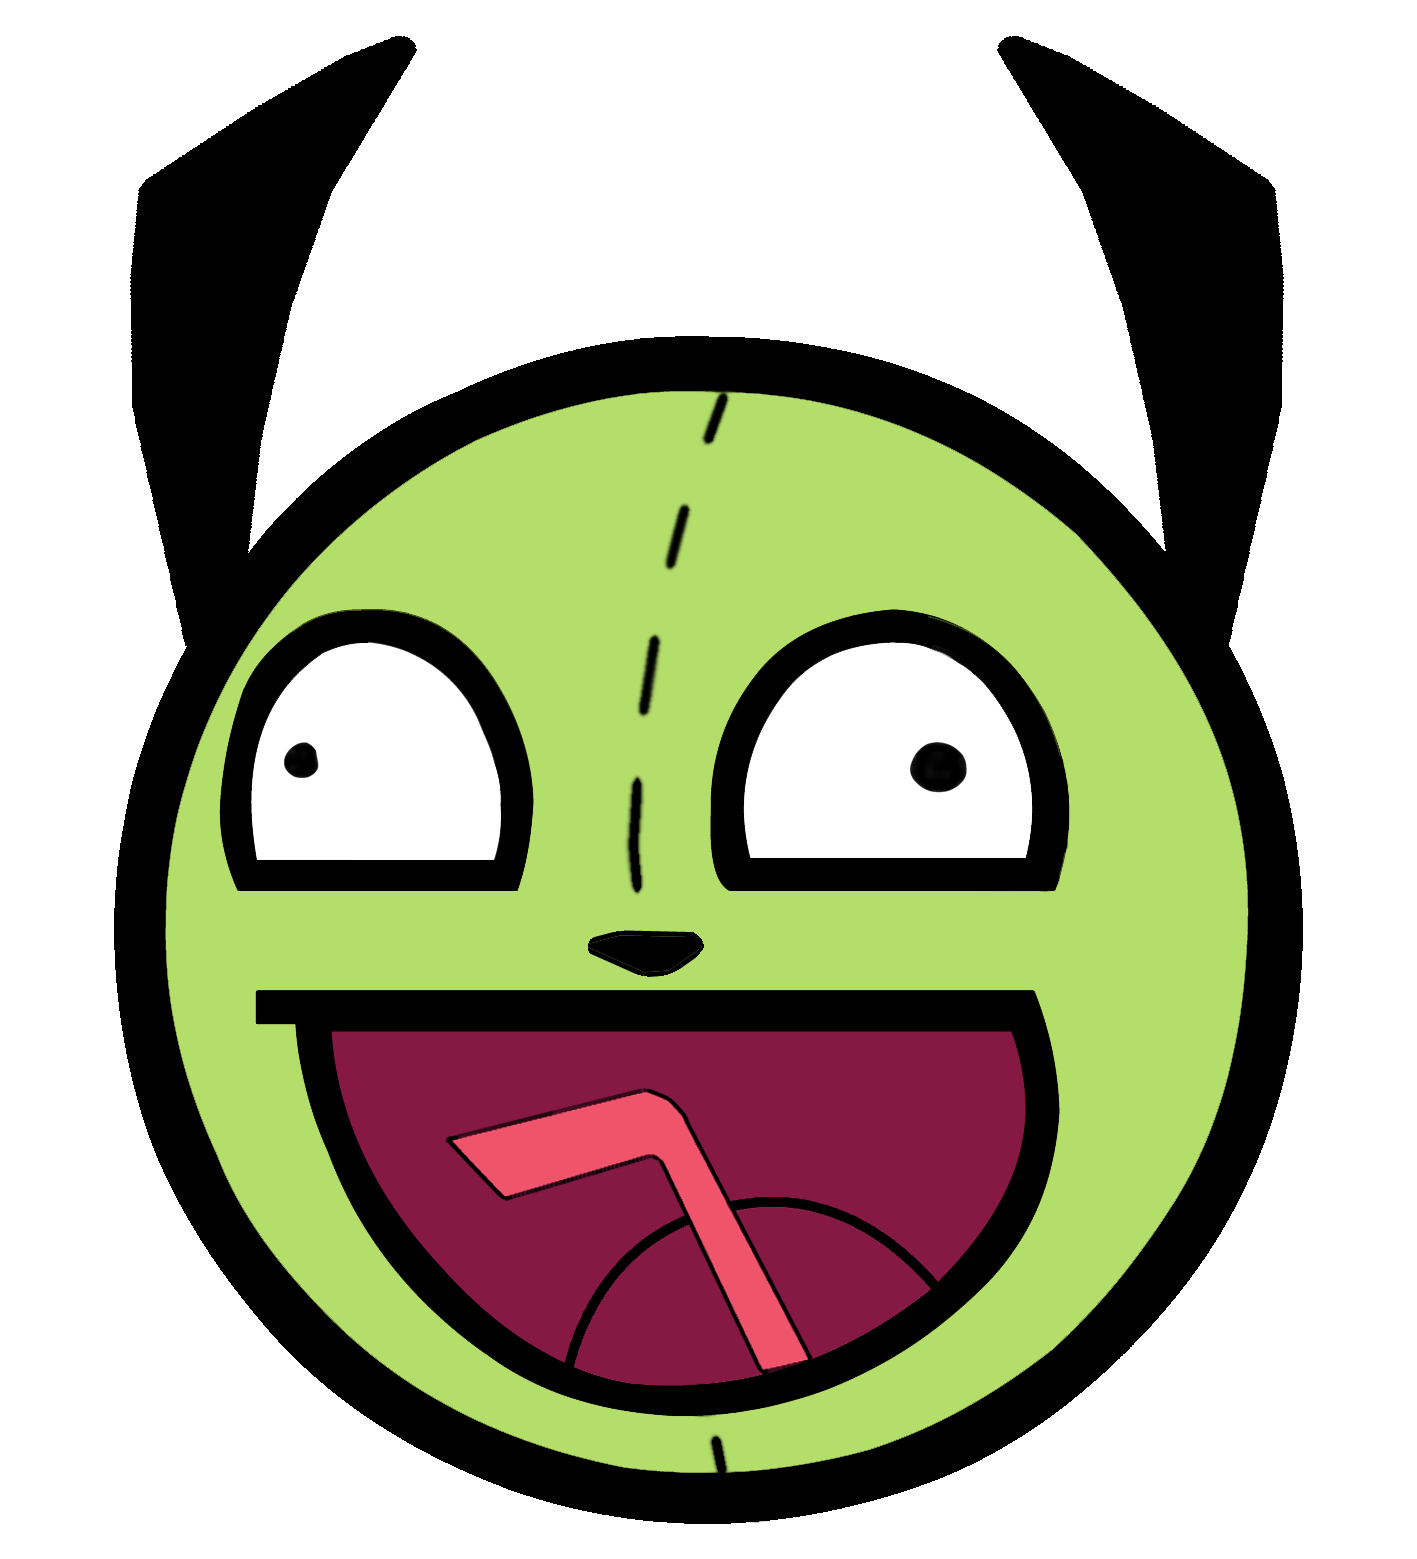 Gir awesome face by riroque on deviantart gir awesome face by riroque gir awesome face by riroque voltagebd Image collections